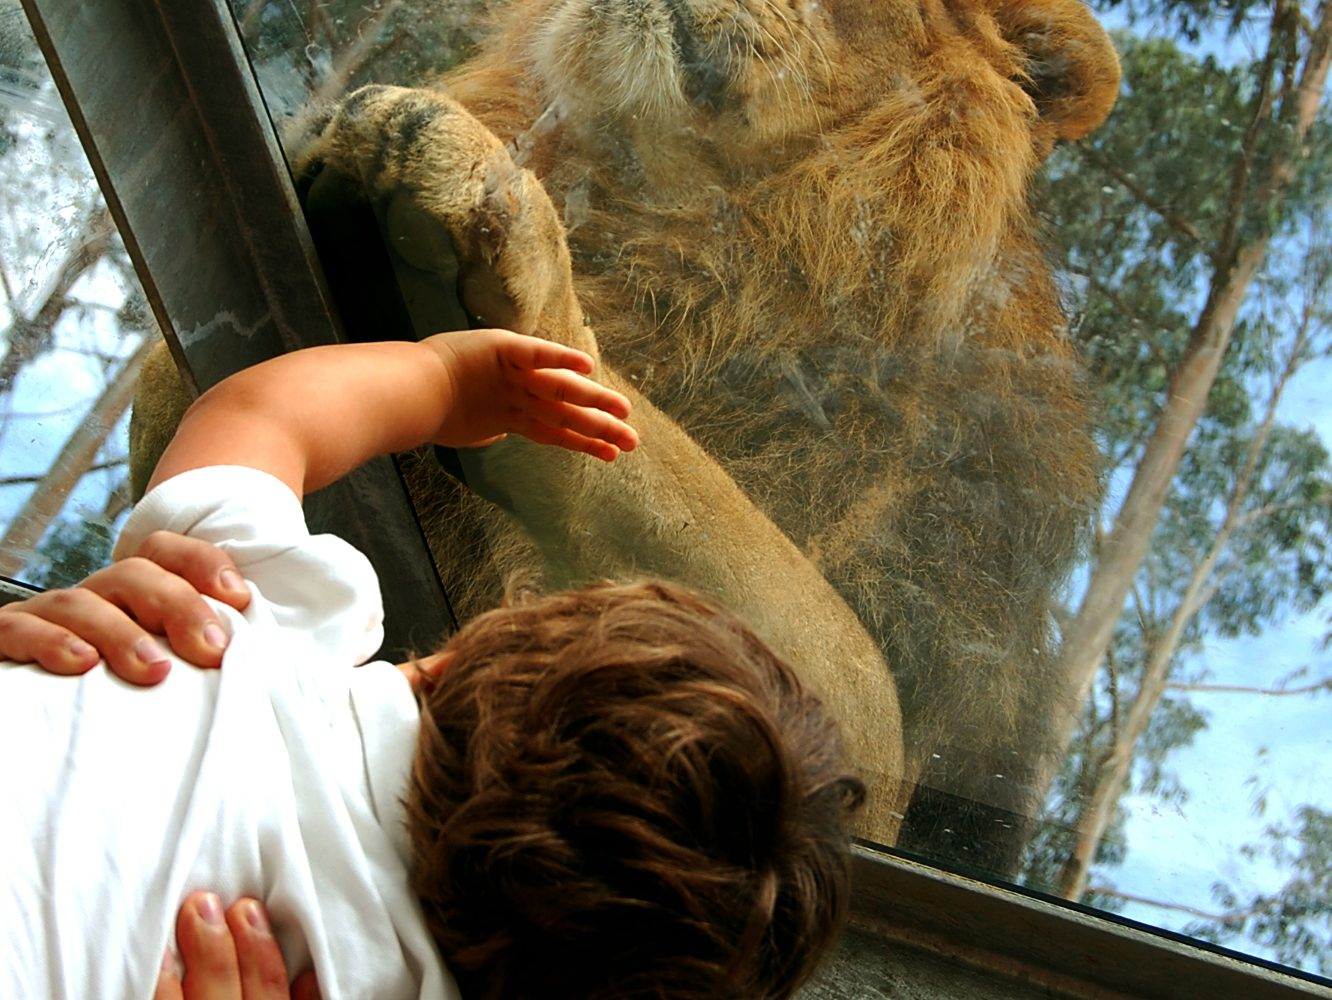 Children almost touchs the lion at Zoo santo inacio Porto